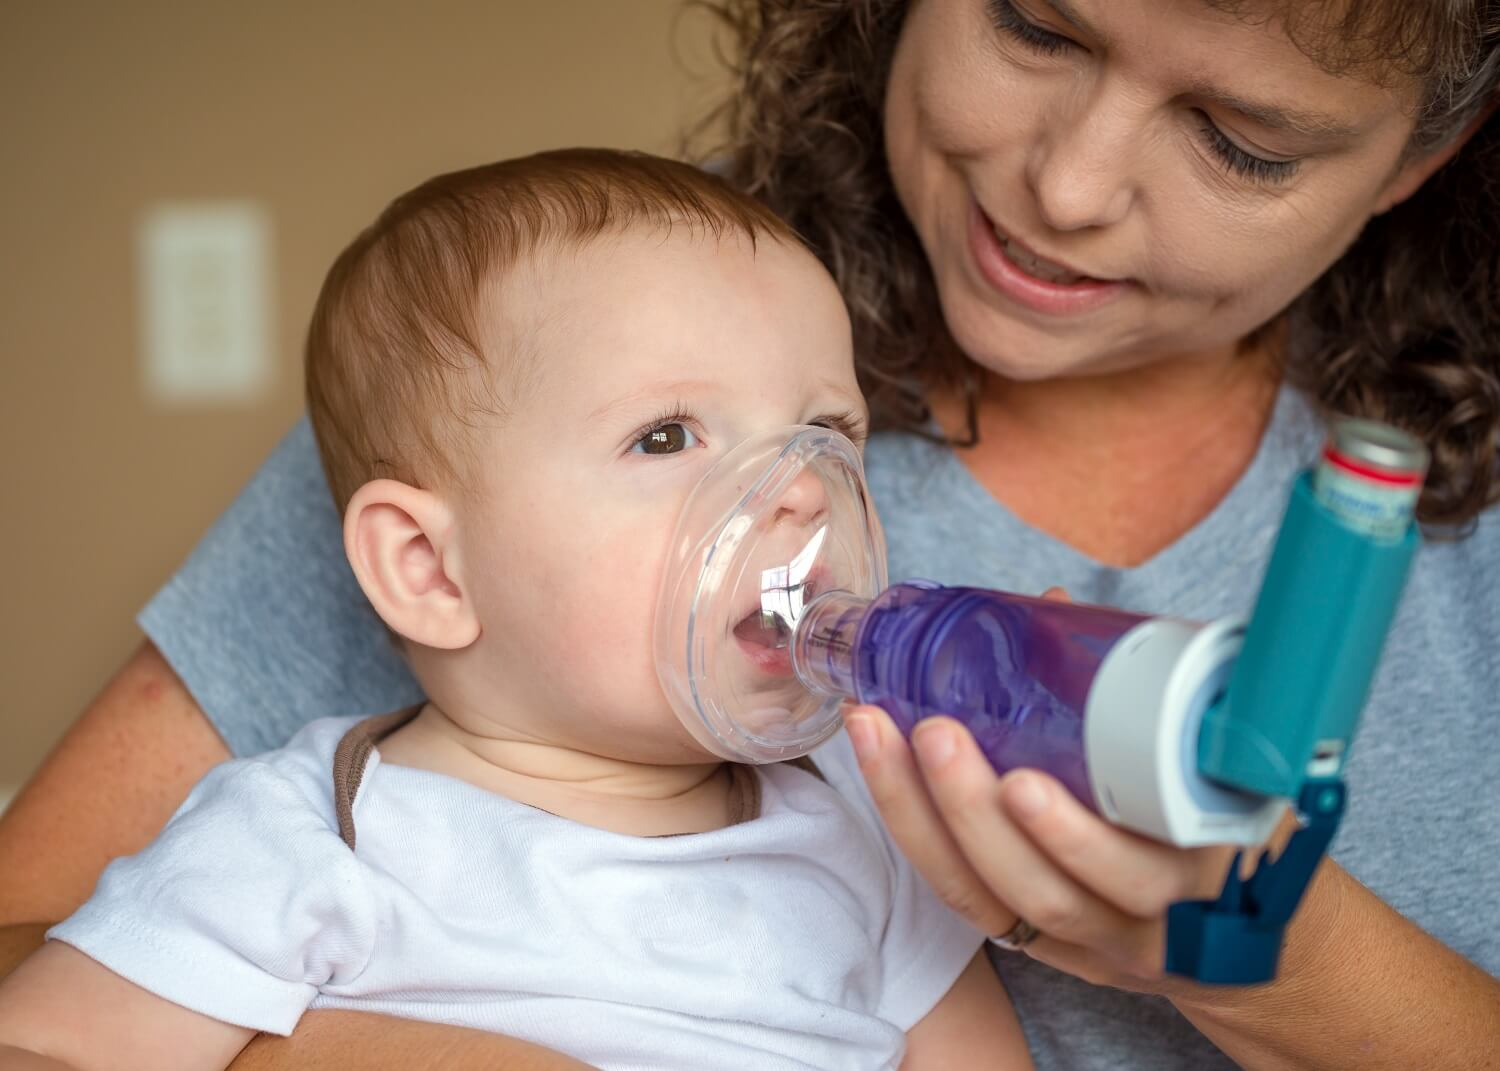 Baby breathing into a inhaler with a spacer